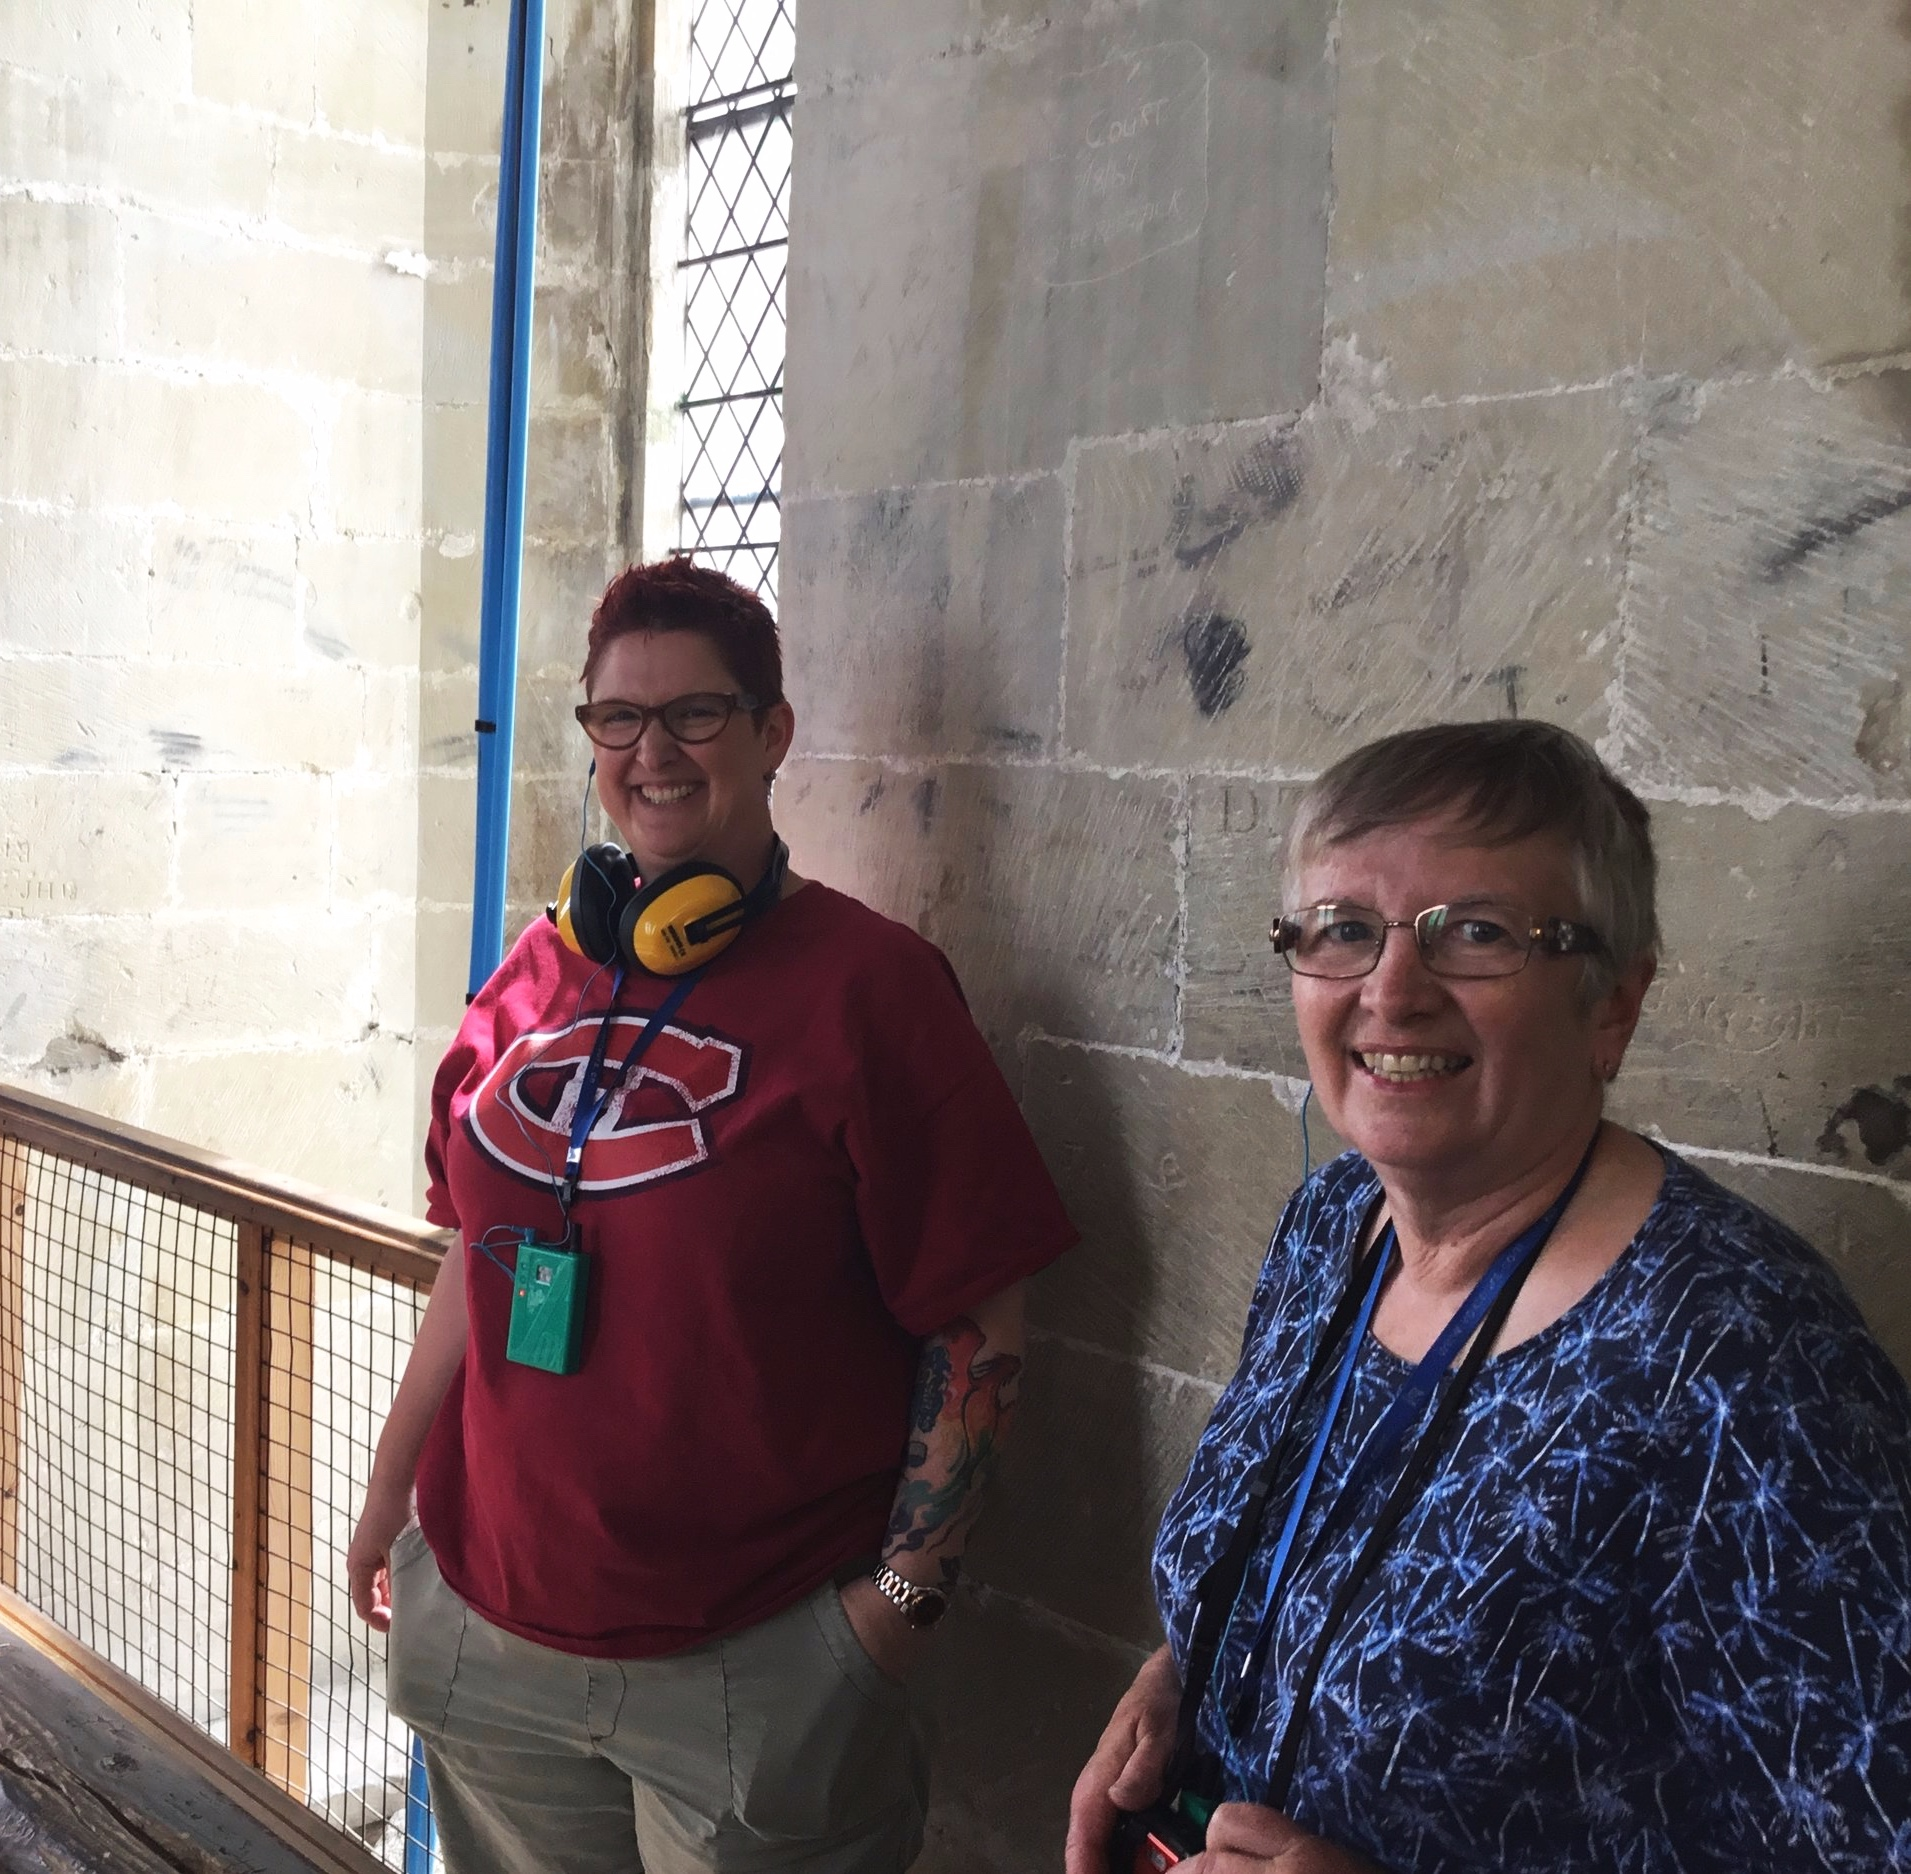 On the tower tour at Salisbury Cathedral